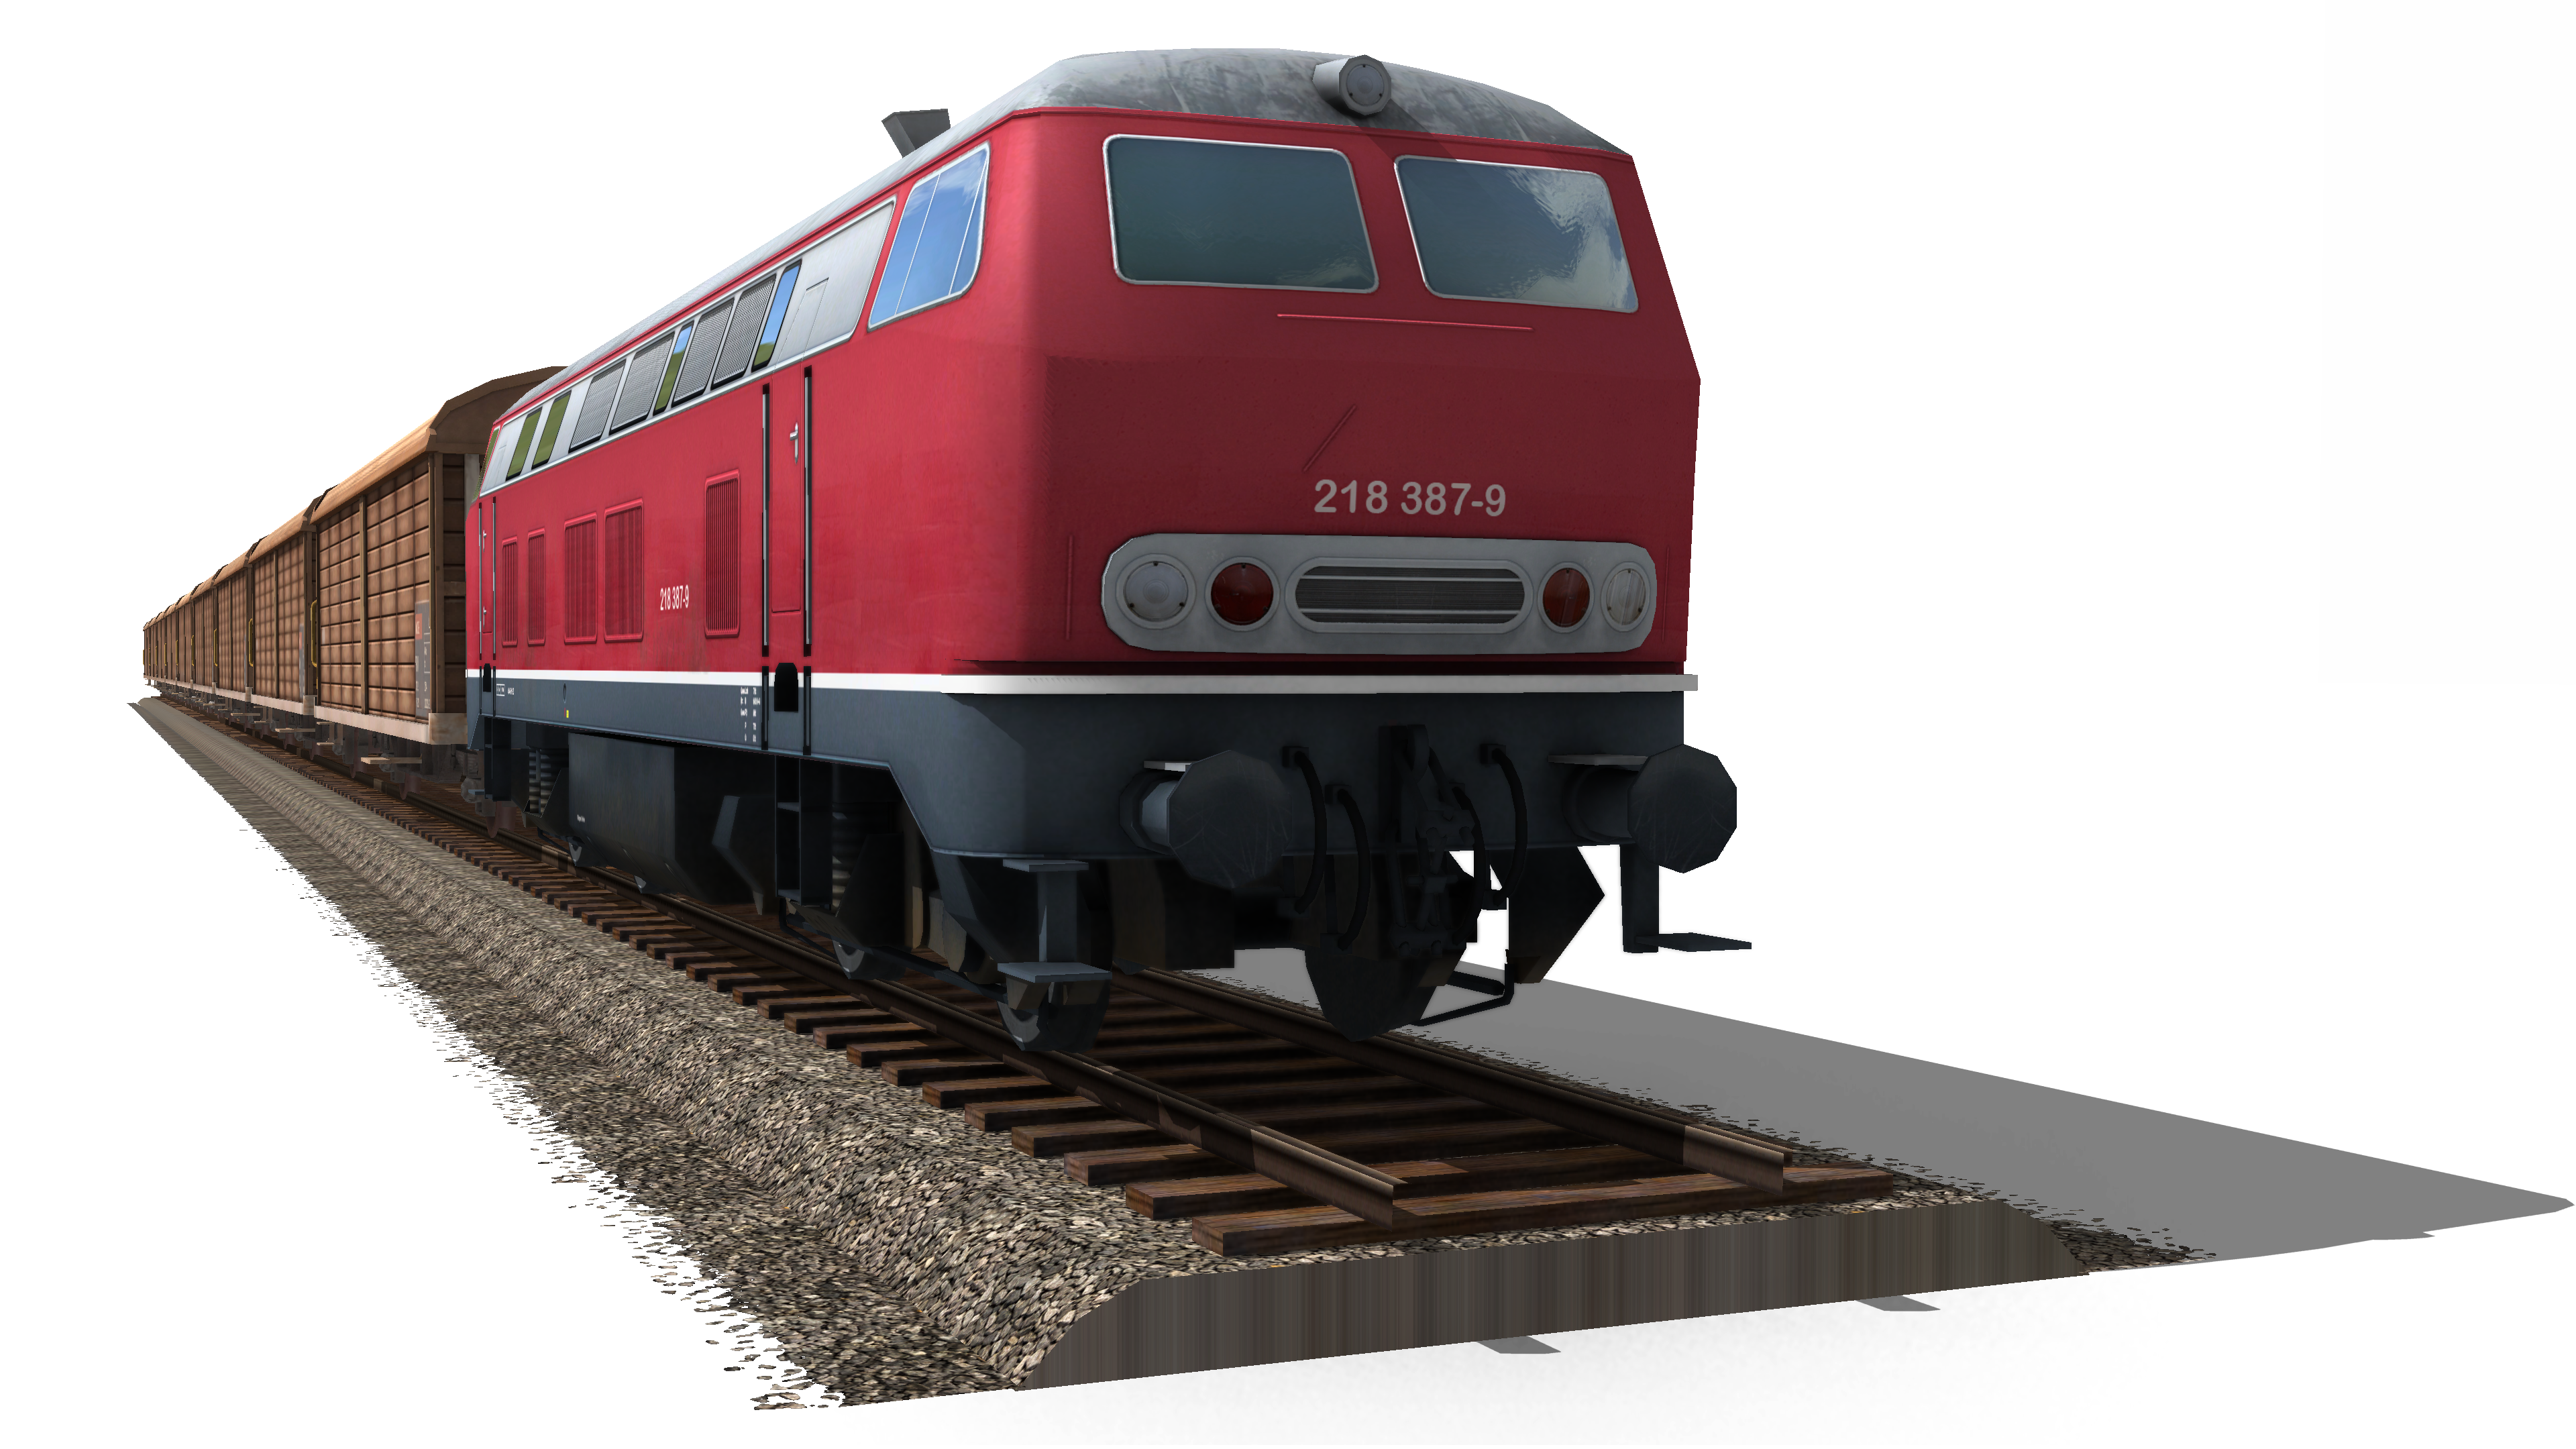 Png Image Of Train - Train Png, Transparent background PNG HD thumbnail